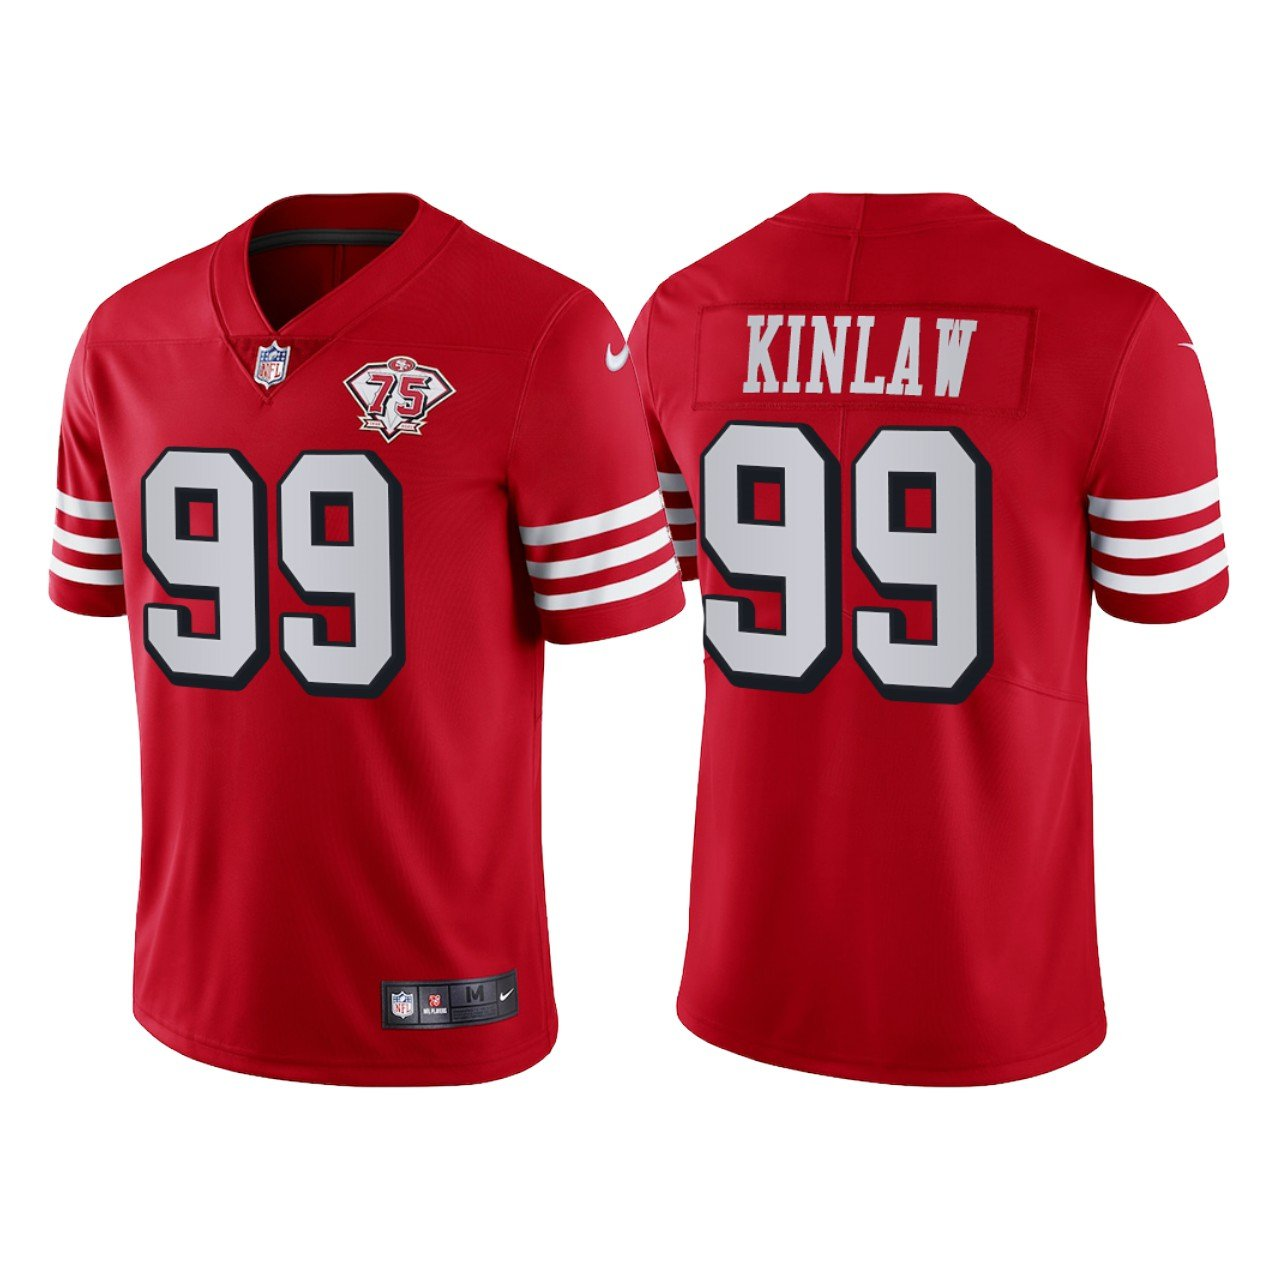 Men's #99 Javon Kinlaw San Francisco 49ers Red Throwback Limited Jersey 75th Anniversary Stitched